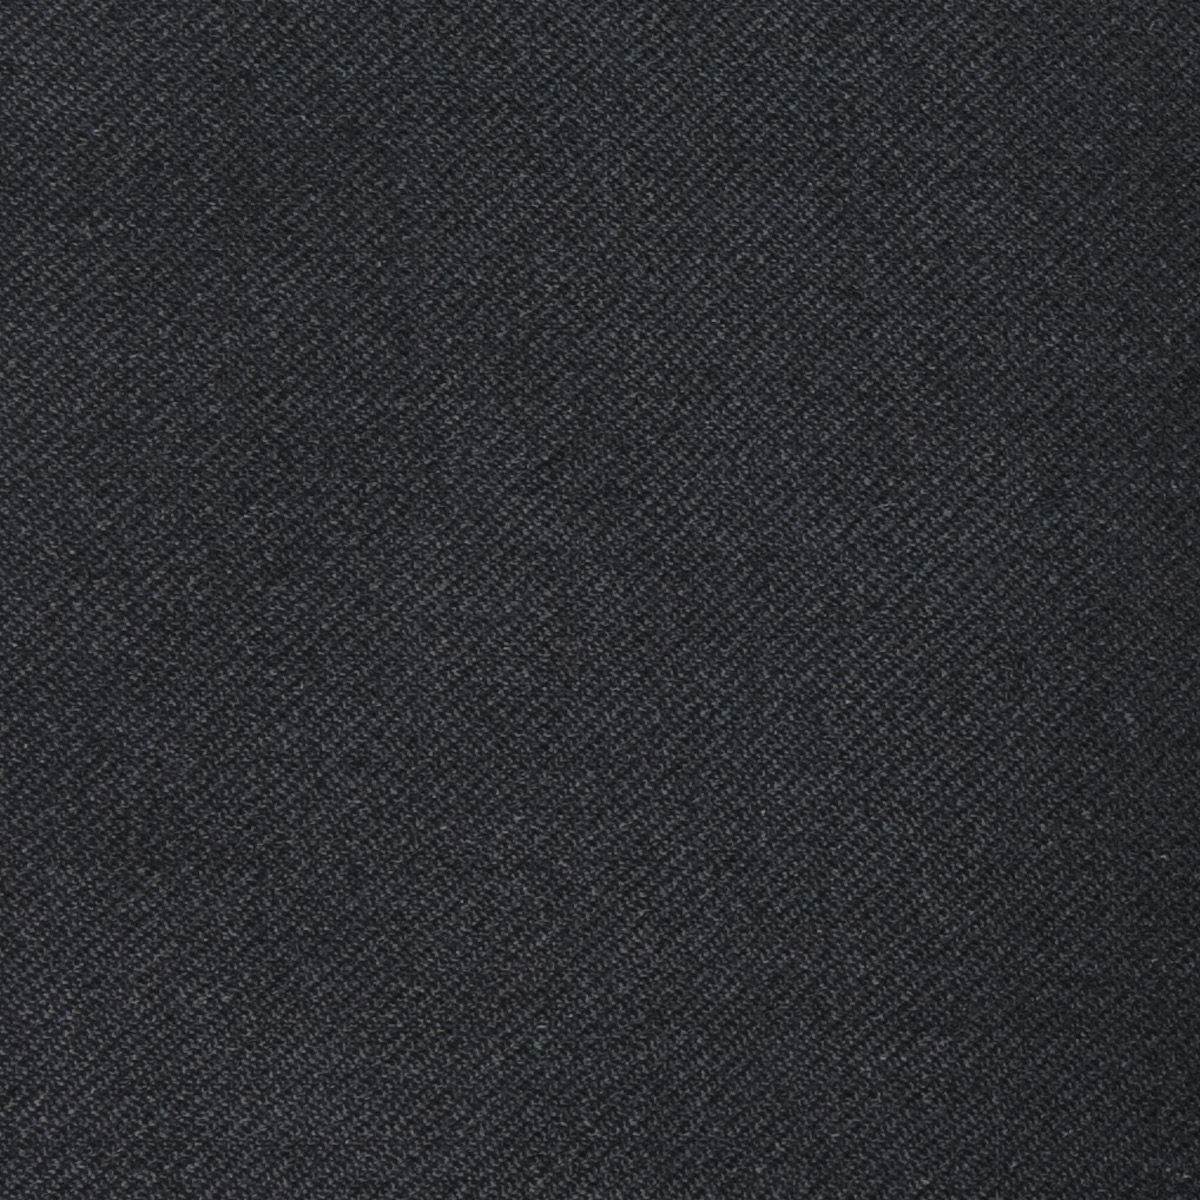 Buy tailor made shirts online - Lightweight Cotton Leisure Cloth - Black with lining